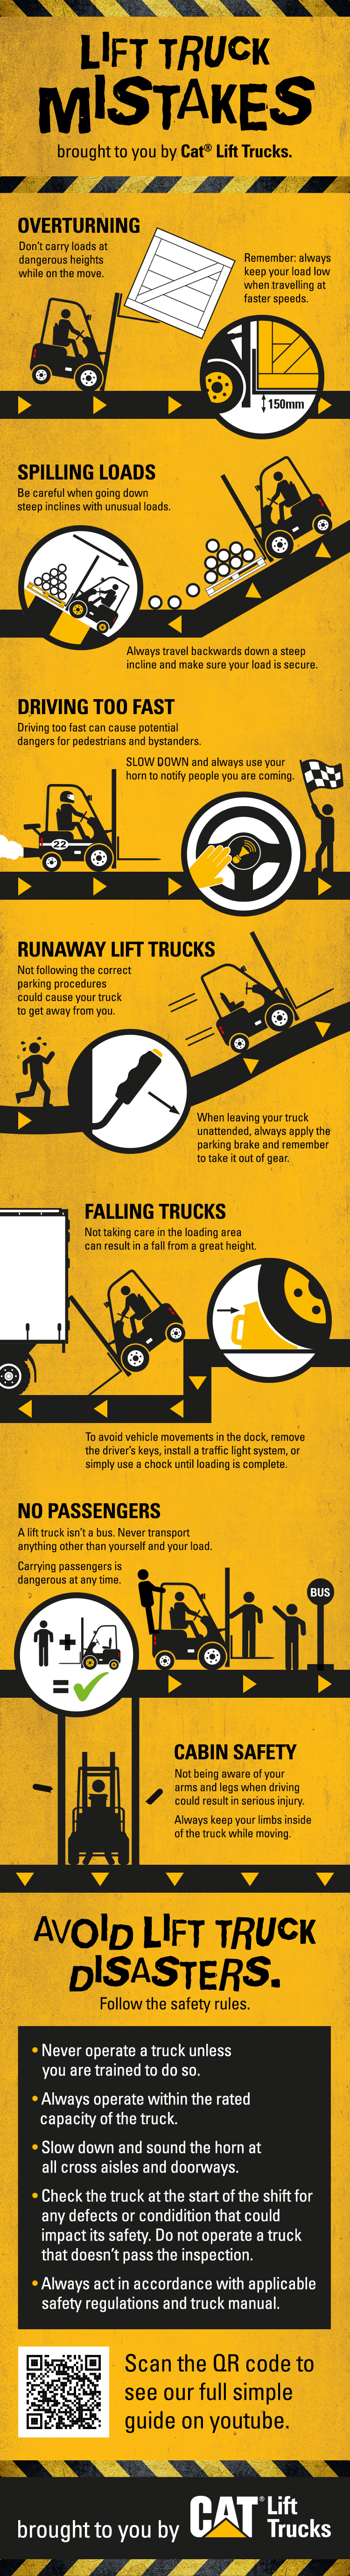 Lift-Truck-Mistakes_online-infographic_1_UK